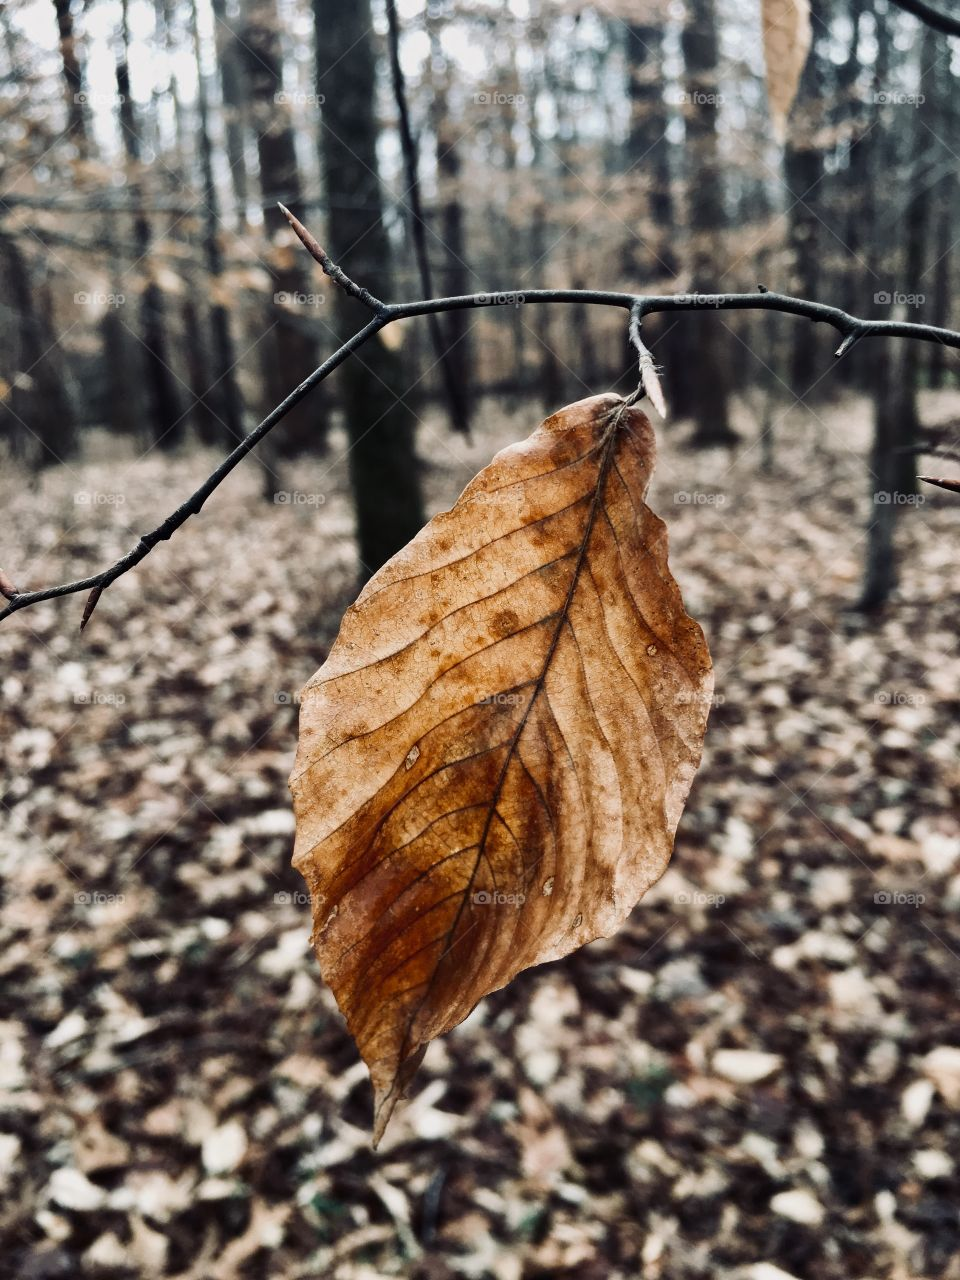 A single beech tree leaf not wanting to accept the season